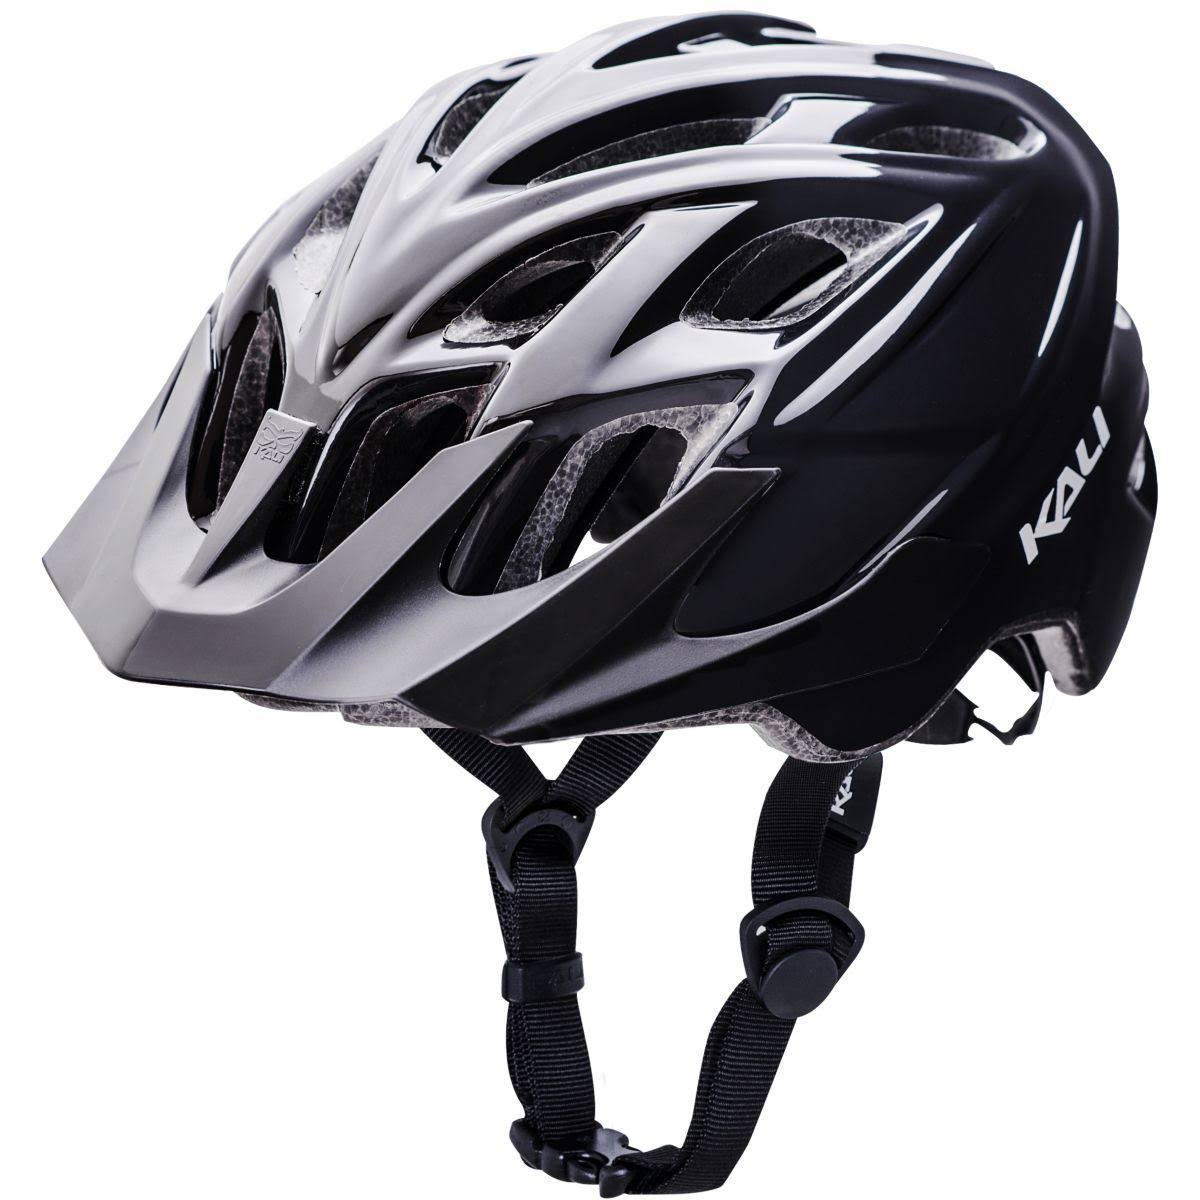 Kali Protectives Chakra Solo Helmet-Solid Black